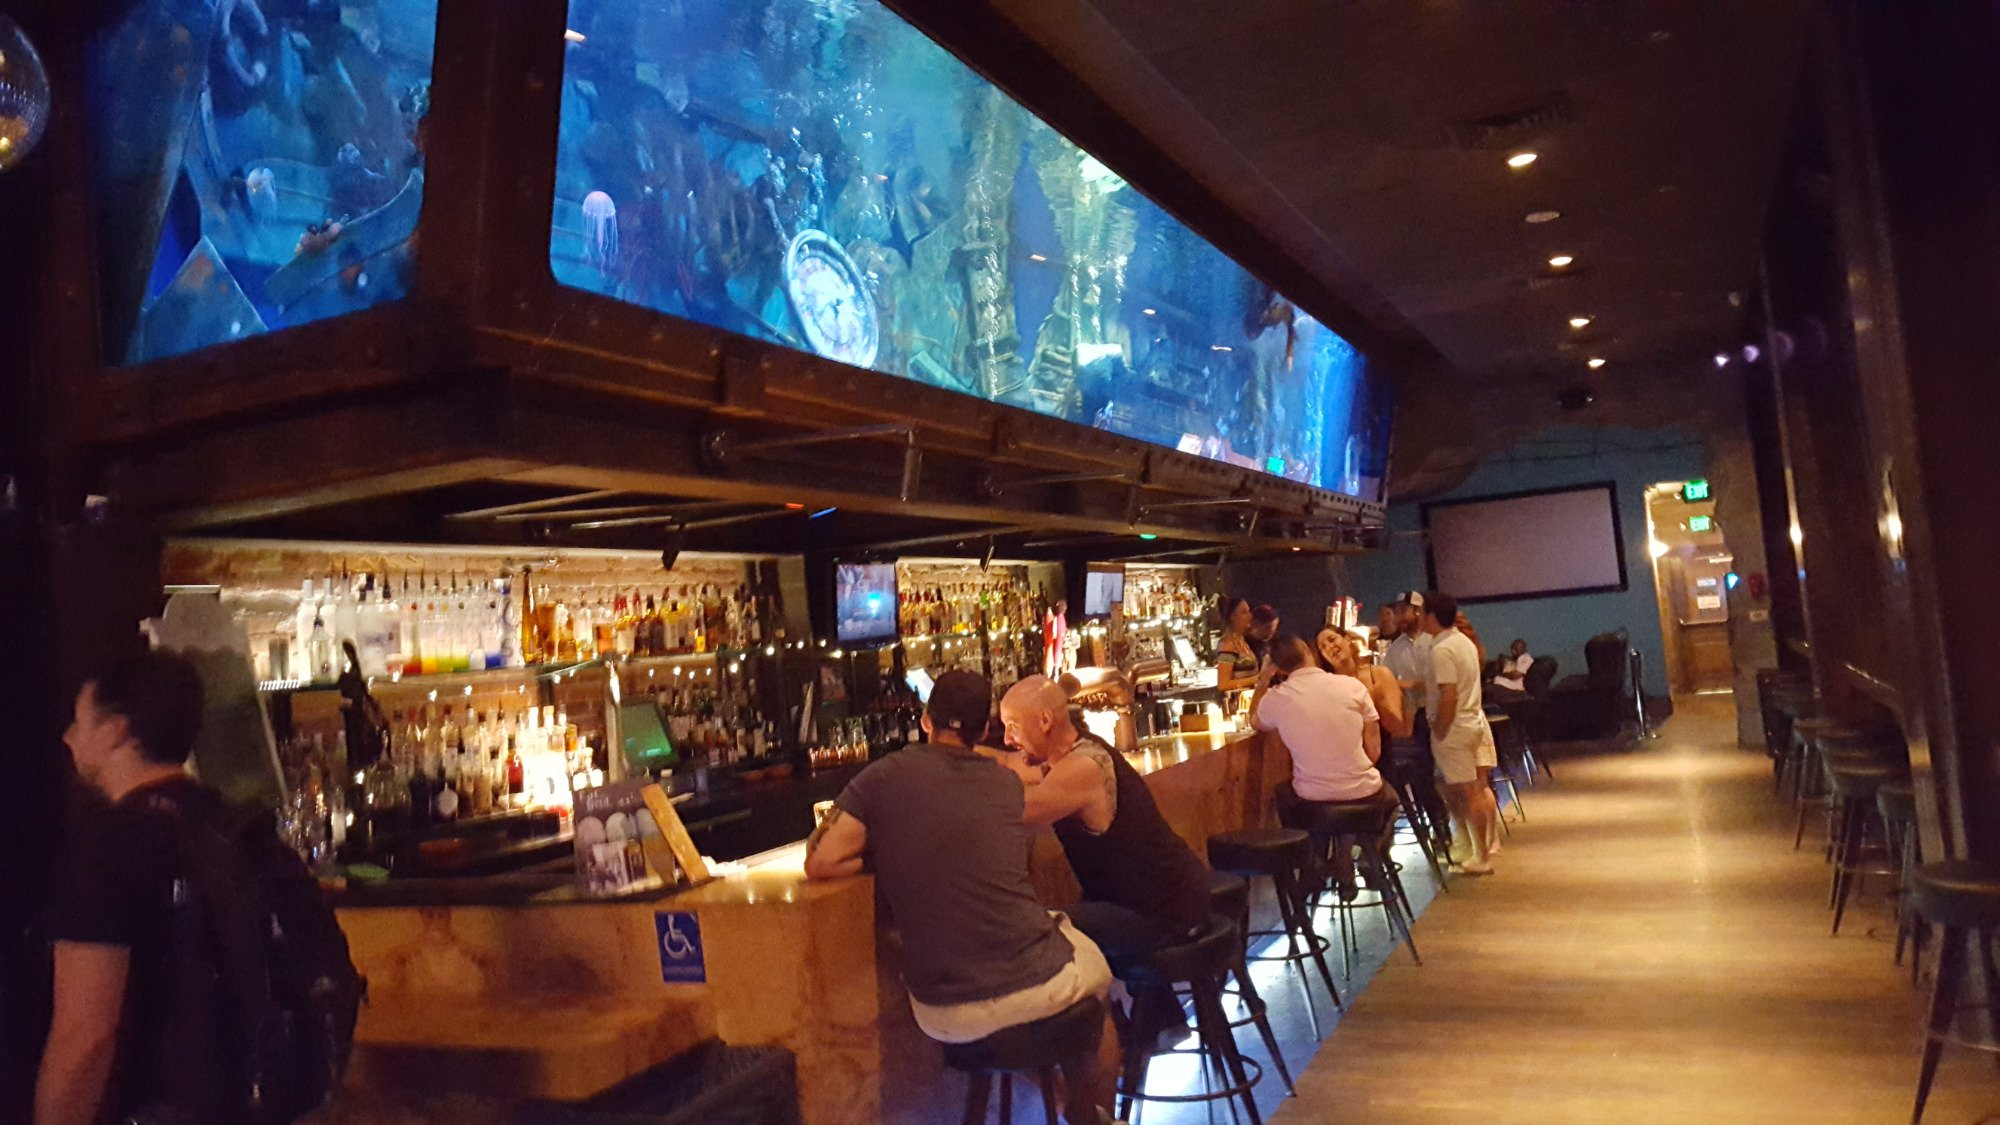 You can watch mermaids at dive bar in northern california for Bar dive